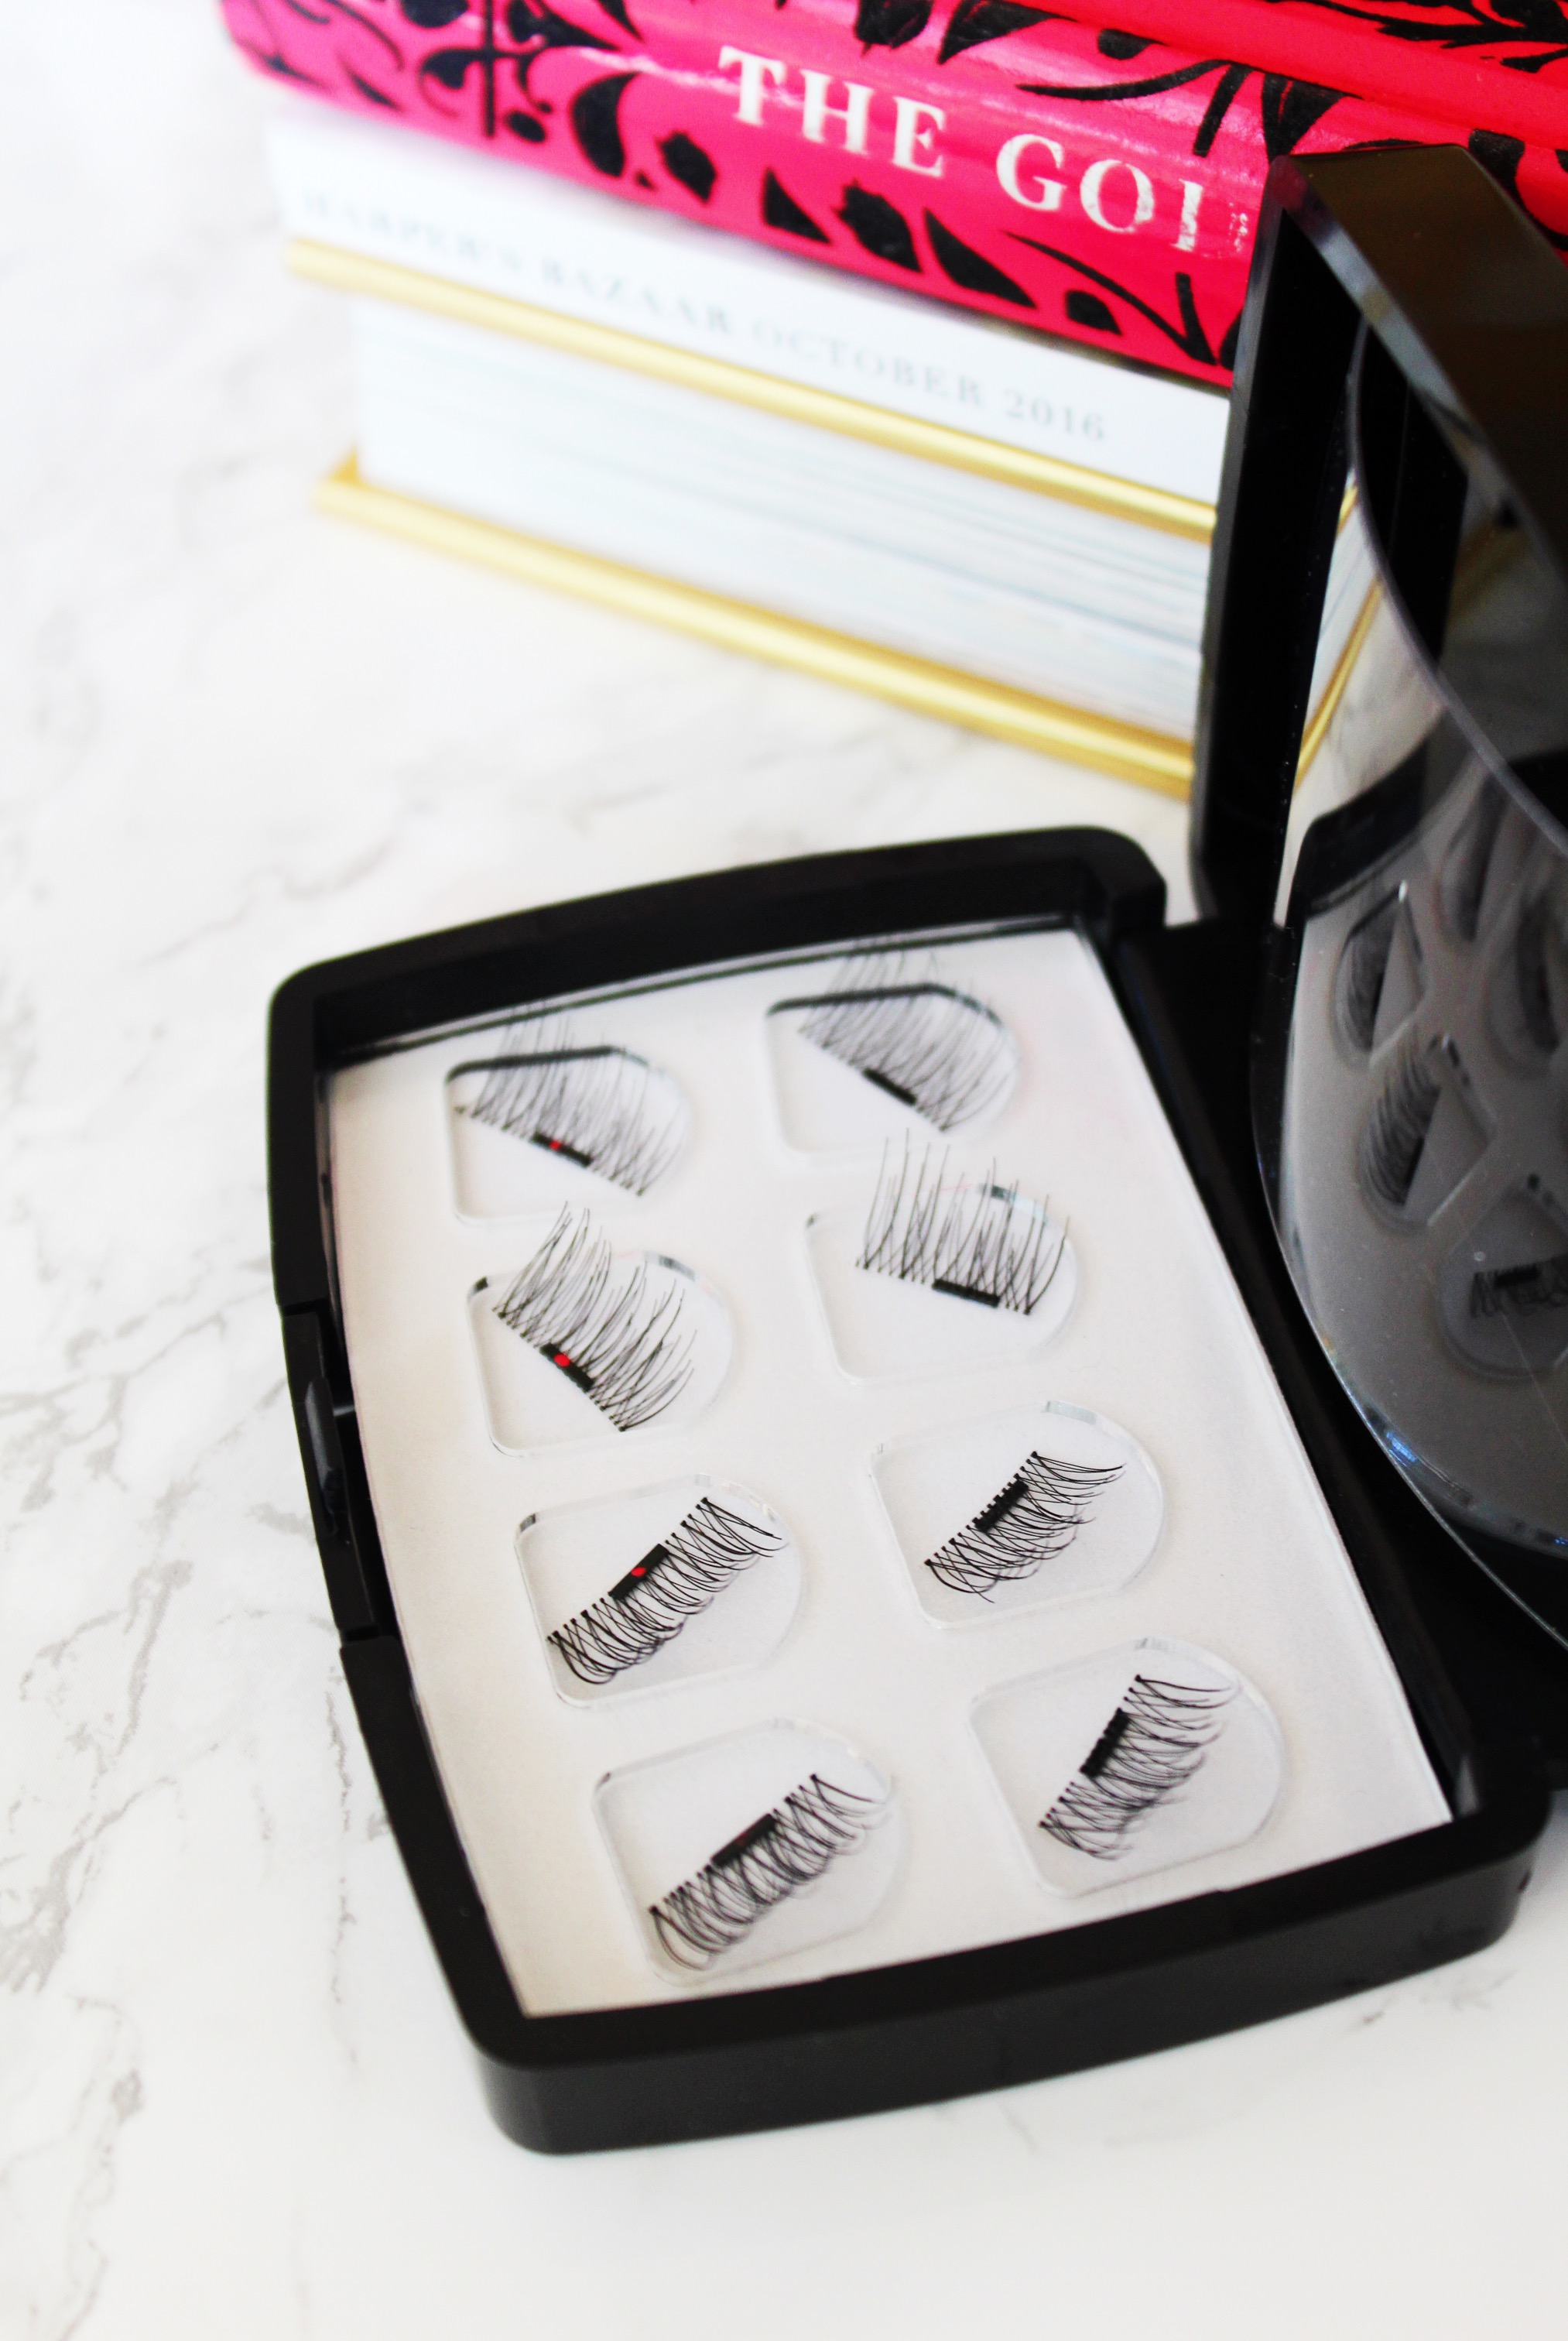 640c76cbfe0 Read This Before Shelling Out for Those Magnetic False Lashes ...